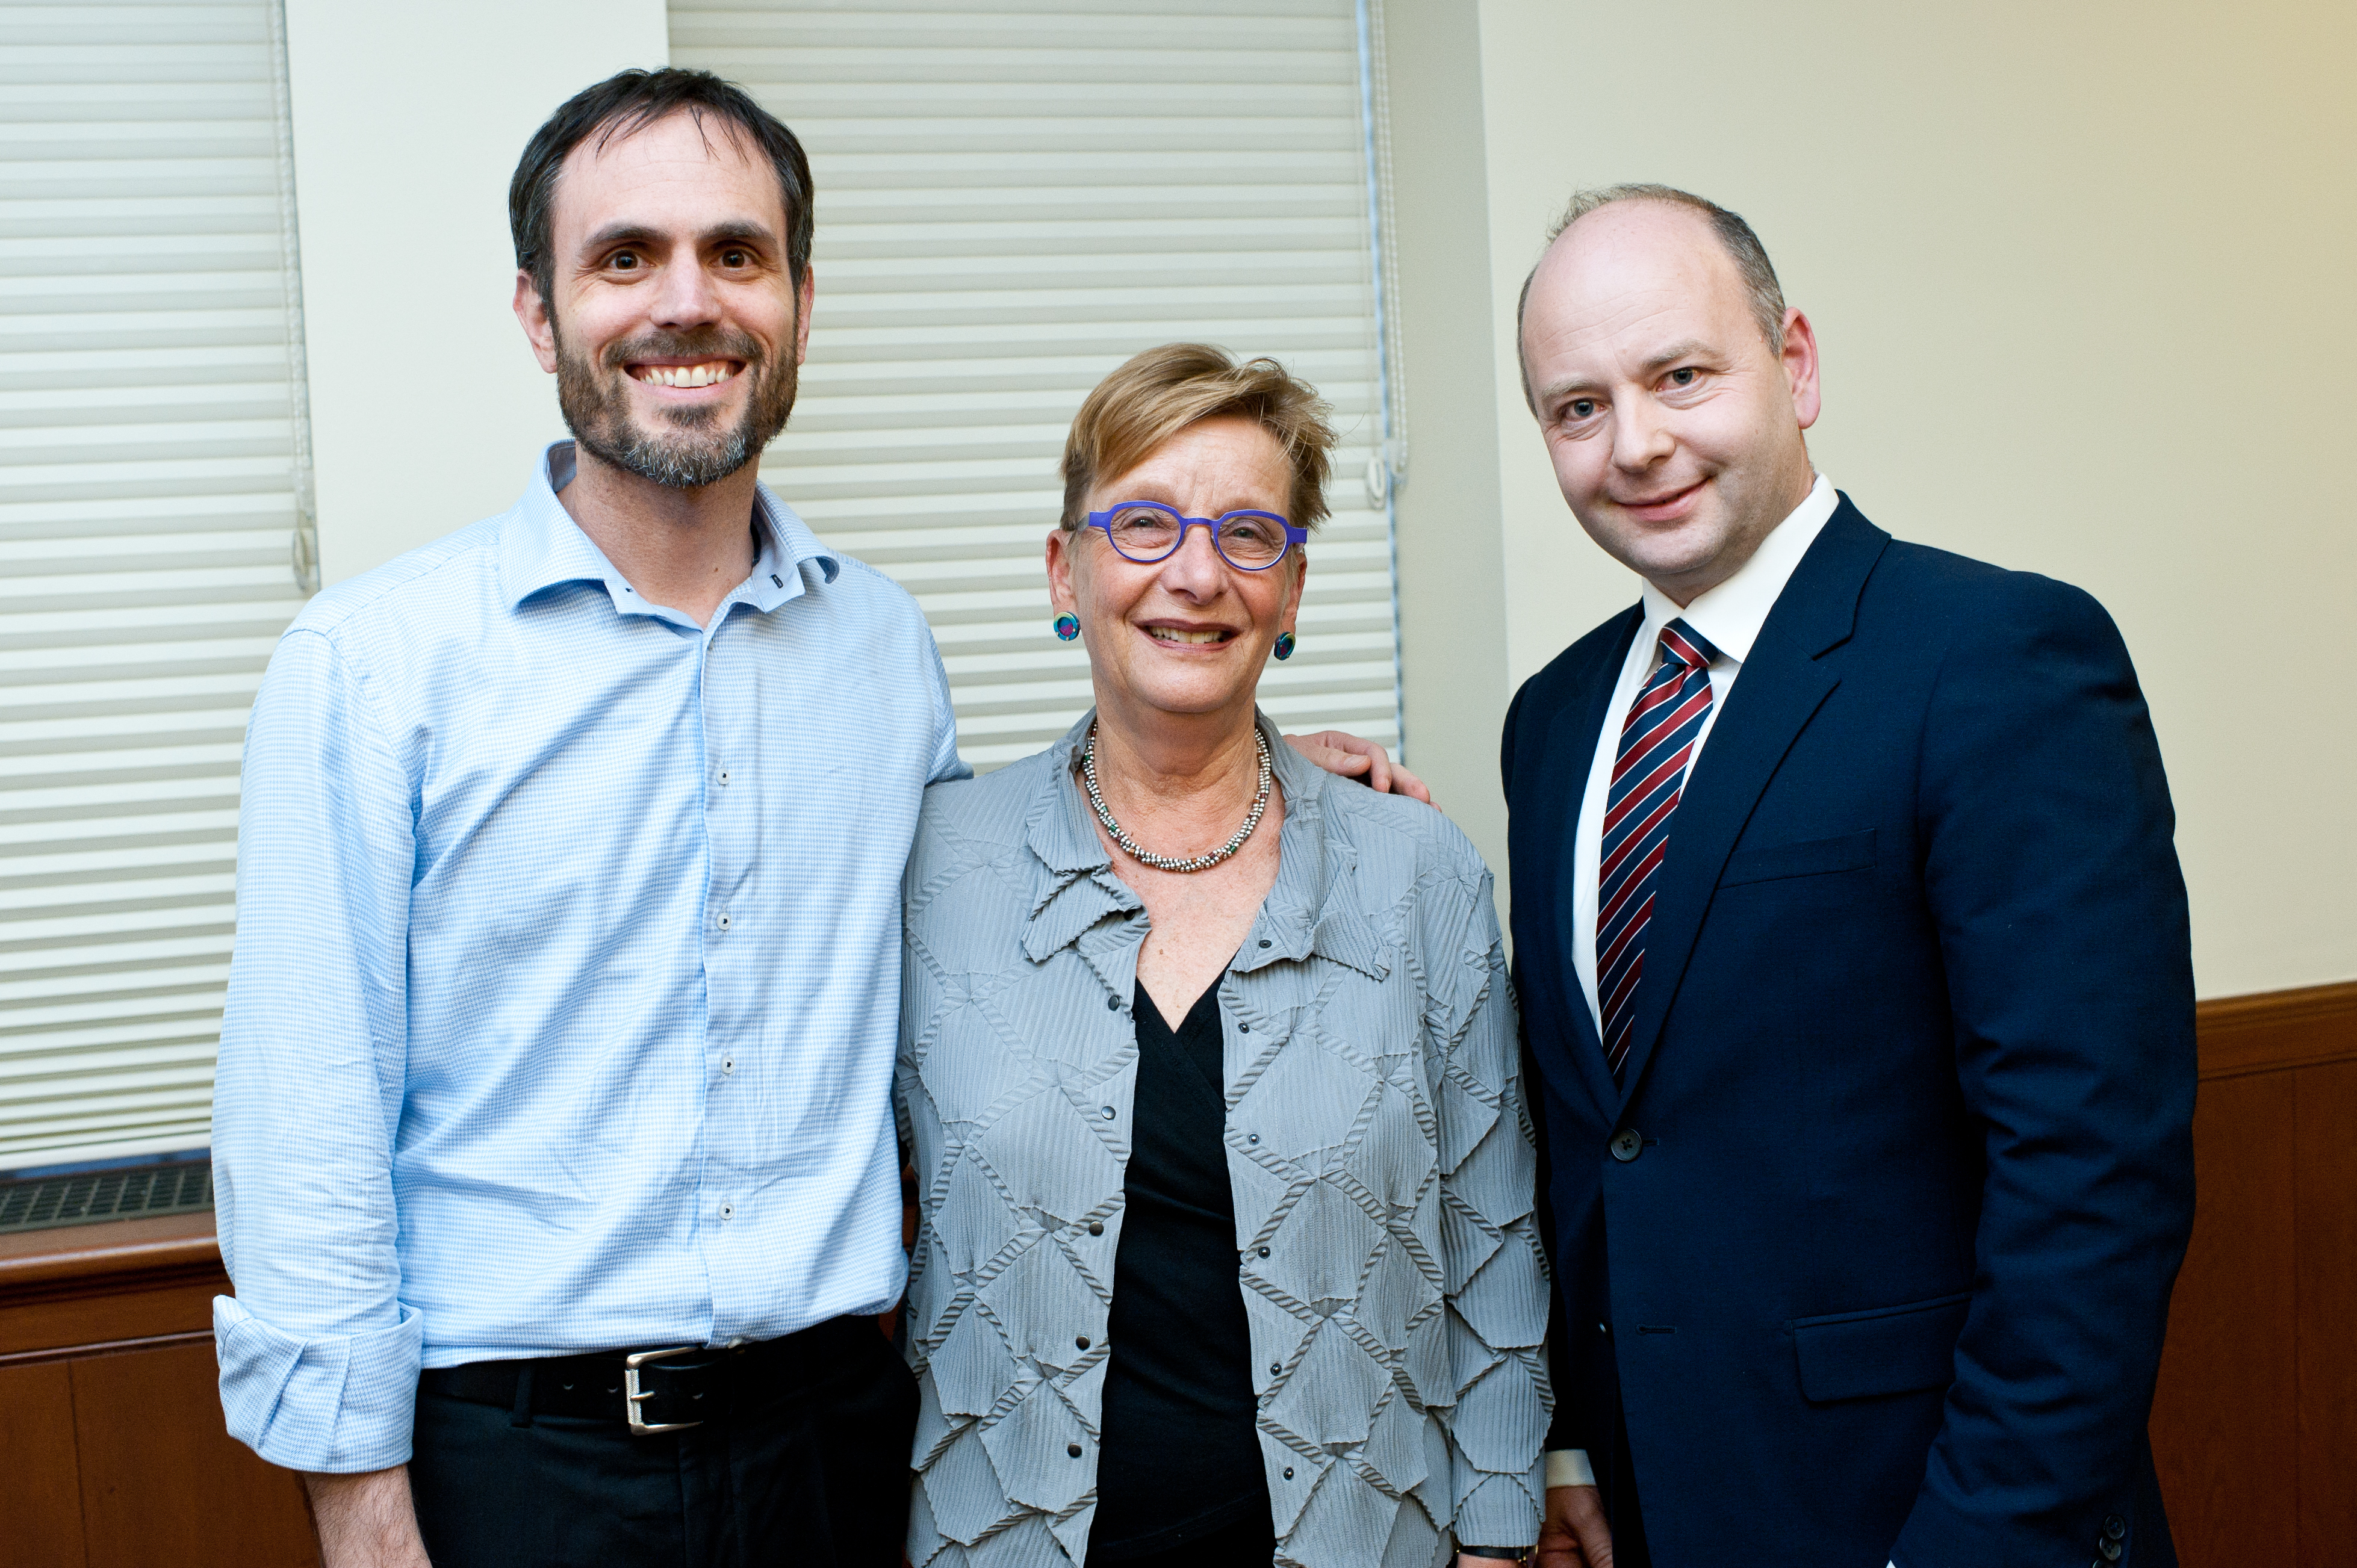 From left: Dr. Dan Leshem, associate director of research, USC Shoah Foundation; Marianne Hirsch; and Stephen D. Smith, executive director, USC Shoah Foundation